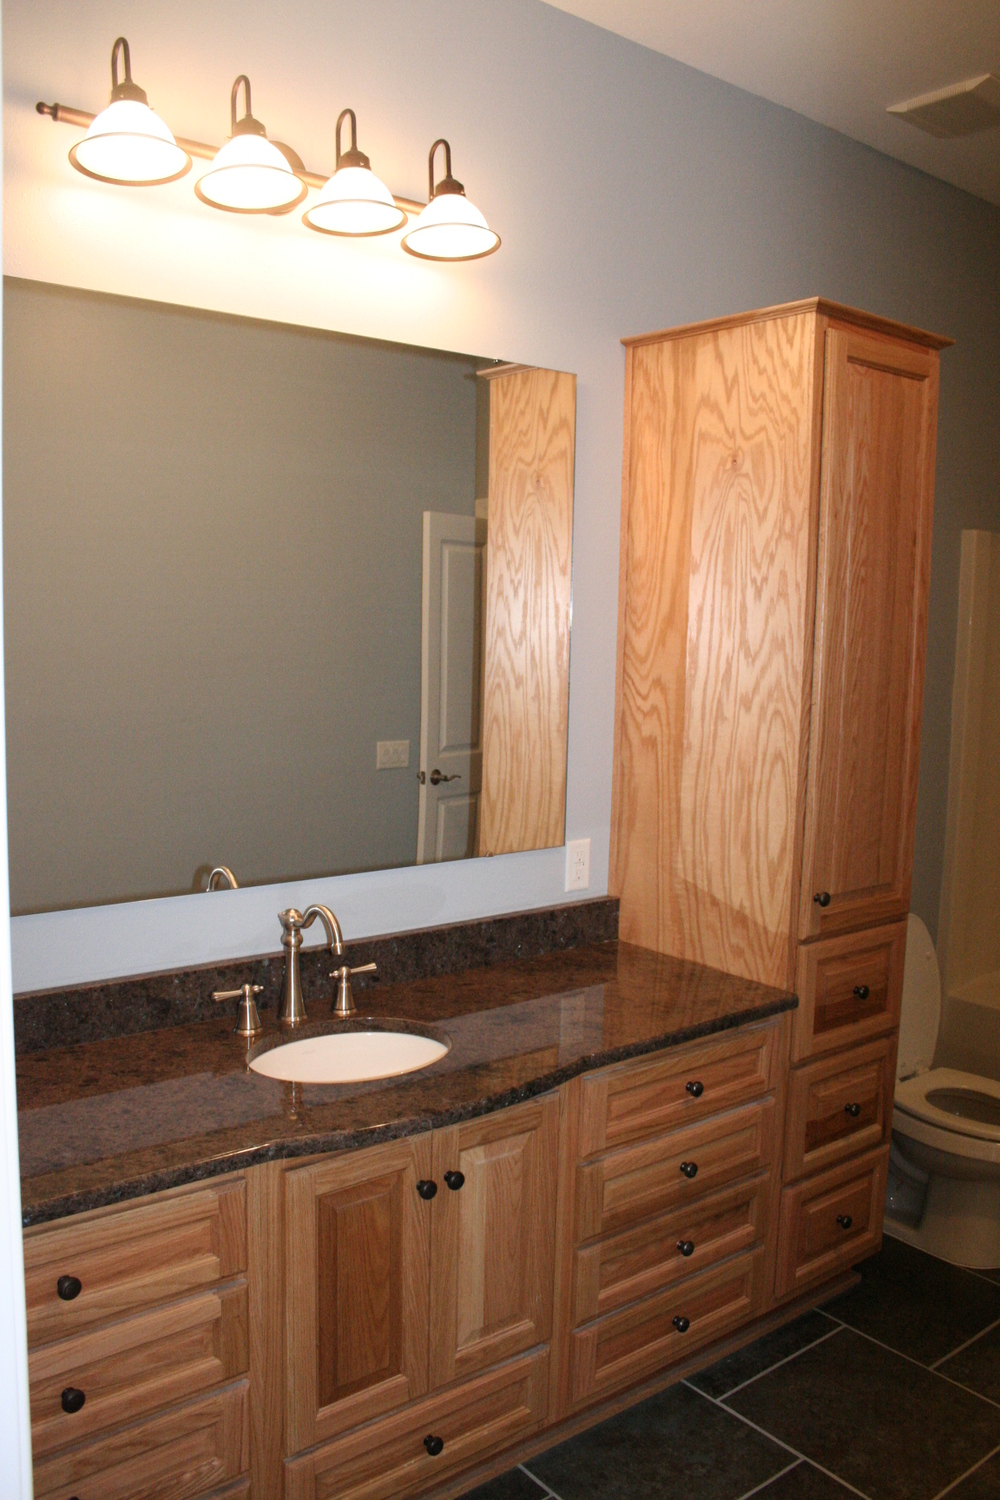 Custom built cabinets and granite countertops